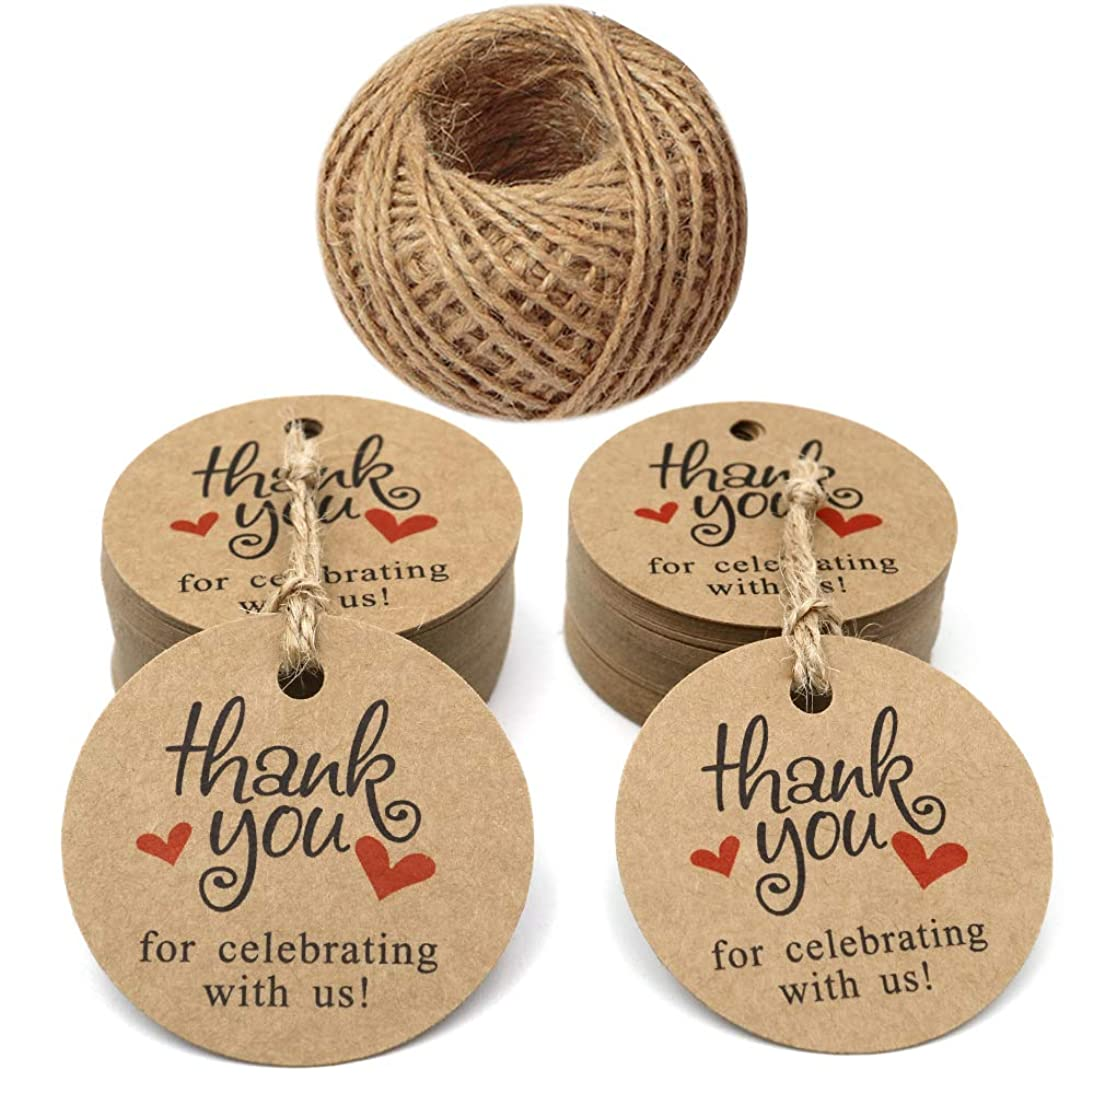 Original Design Father's Day Gift Tags,2 inch Round Brown Tags,Paper Tags,100 Pcs Thank You for Celebrating with Us Tags for Wedding Baby Shower Party Favors with 100 Feet Jute Twine